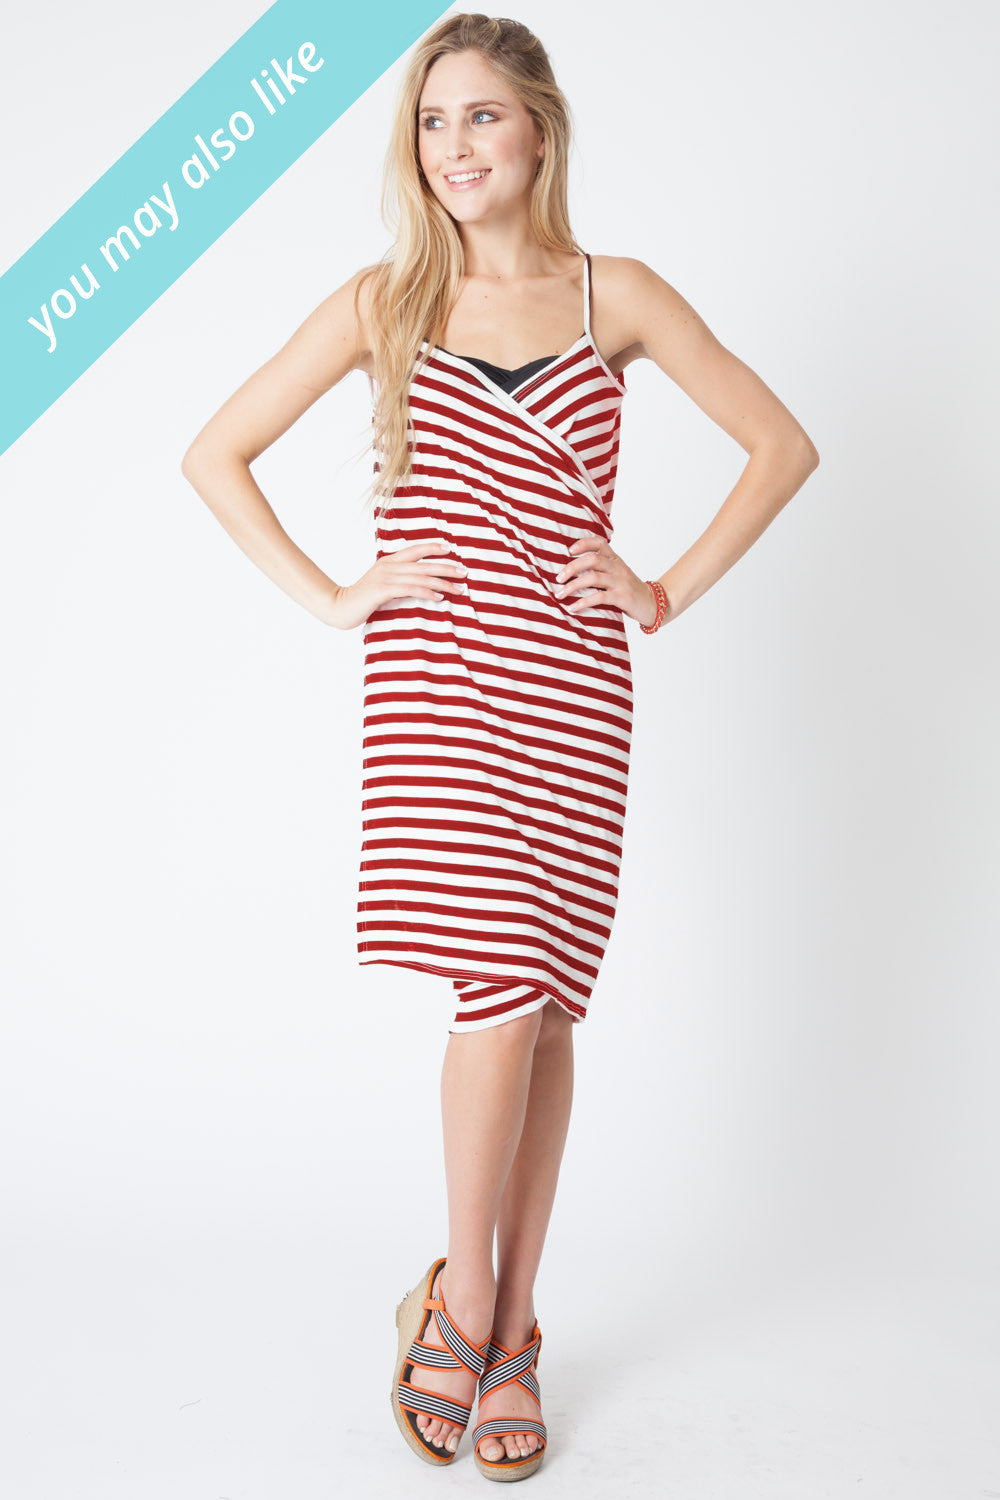 Convertible Beach Wrap Dress in Red Stripe